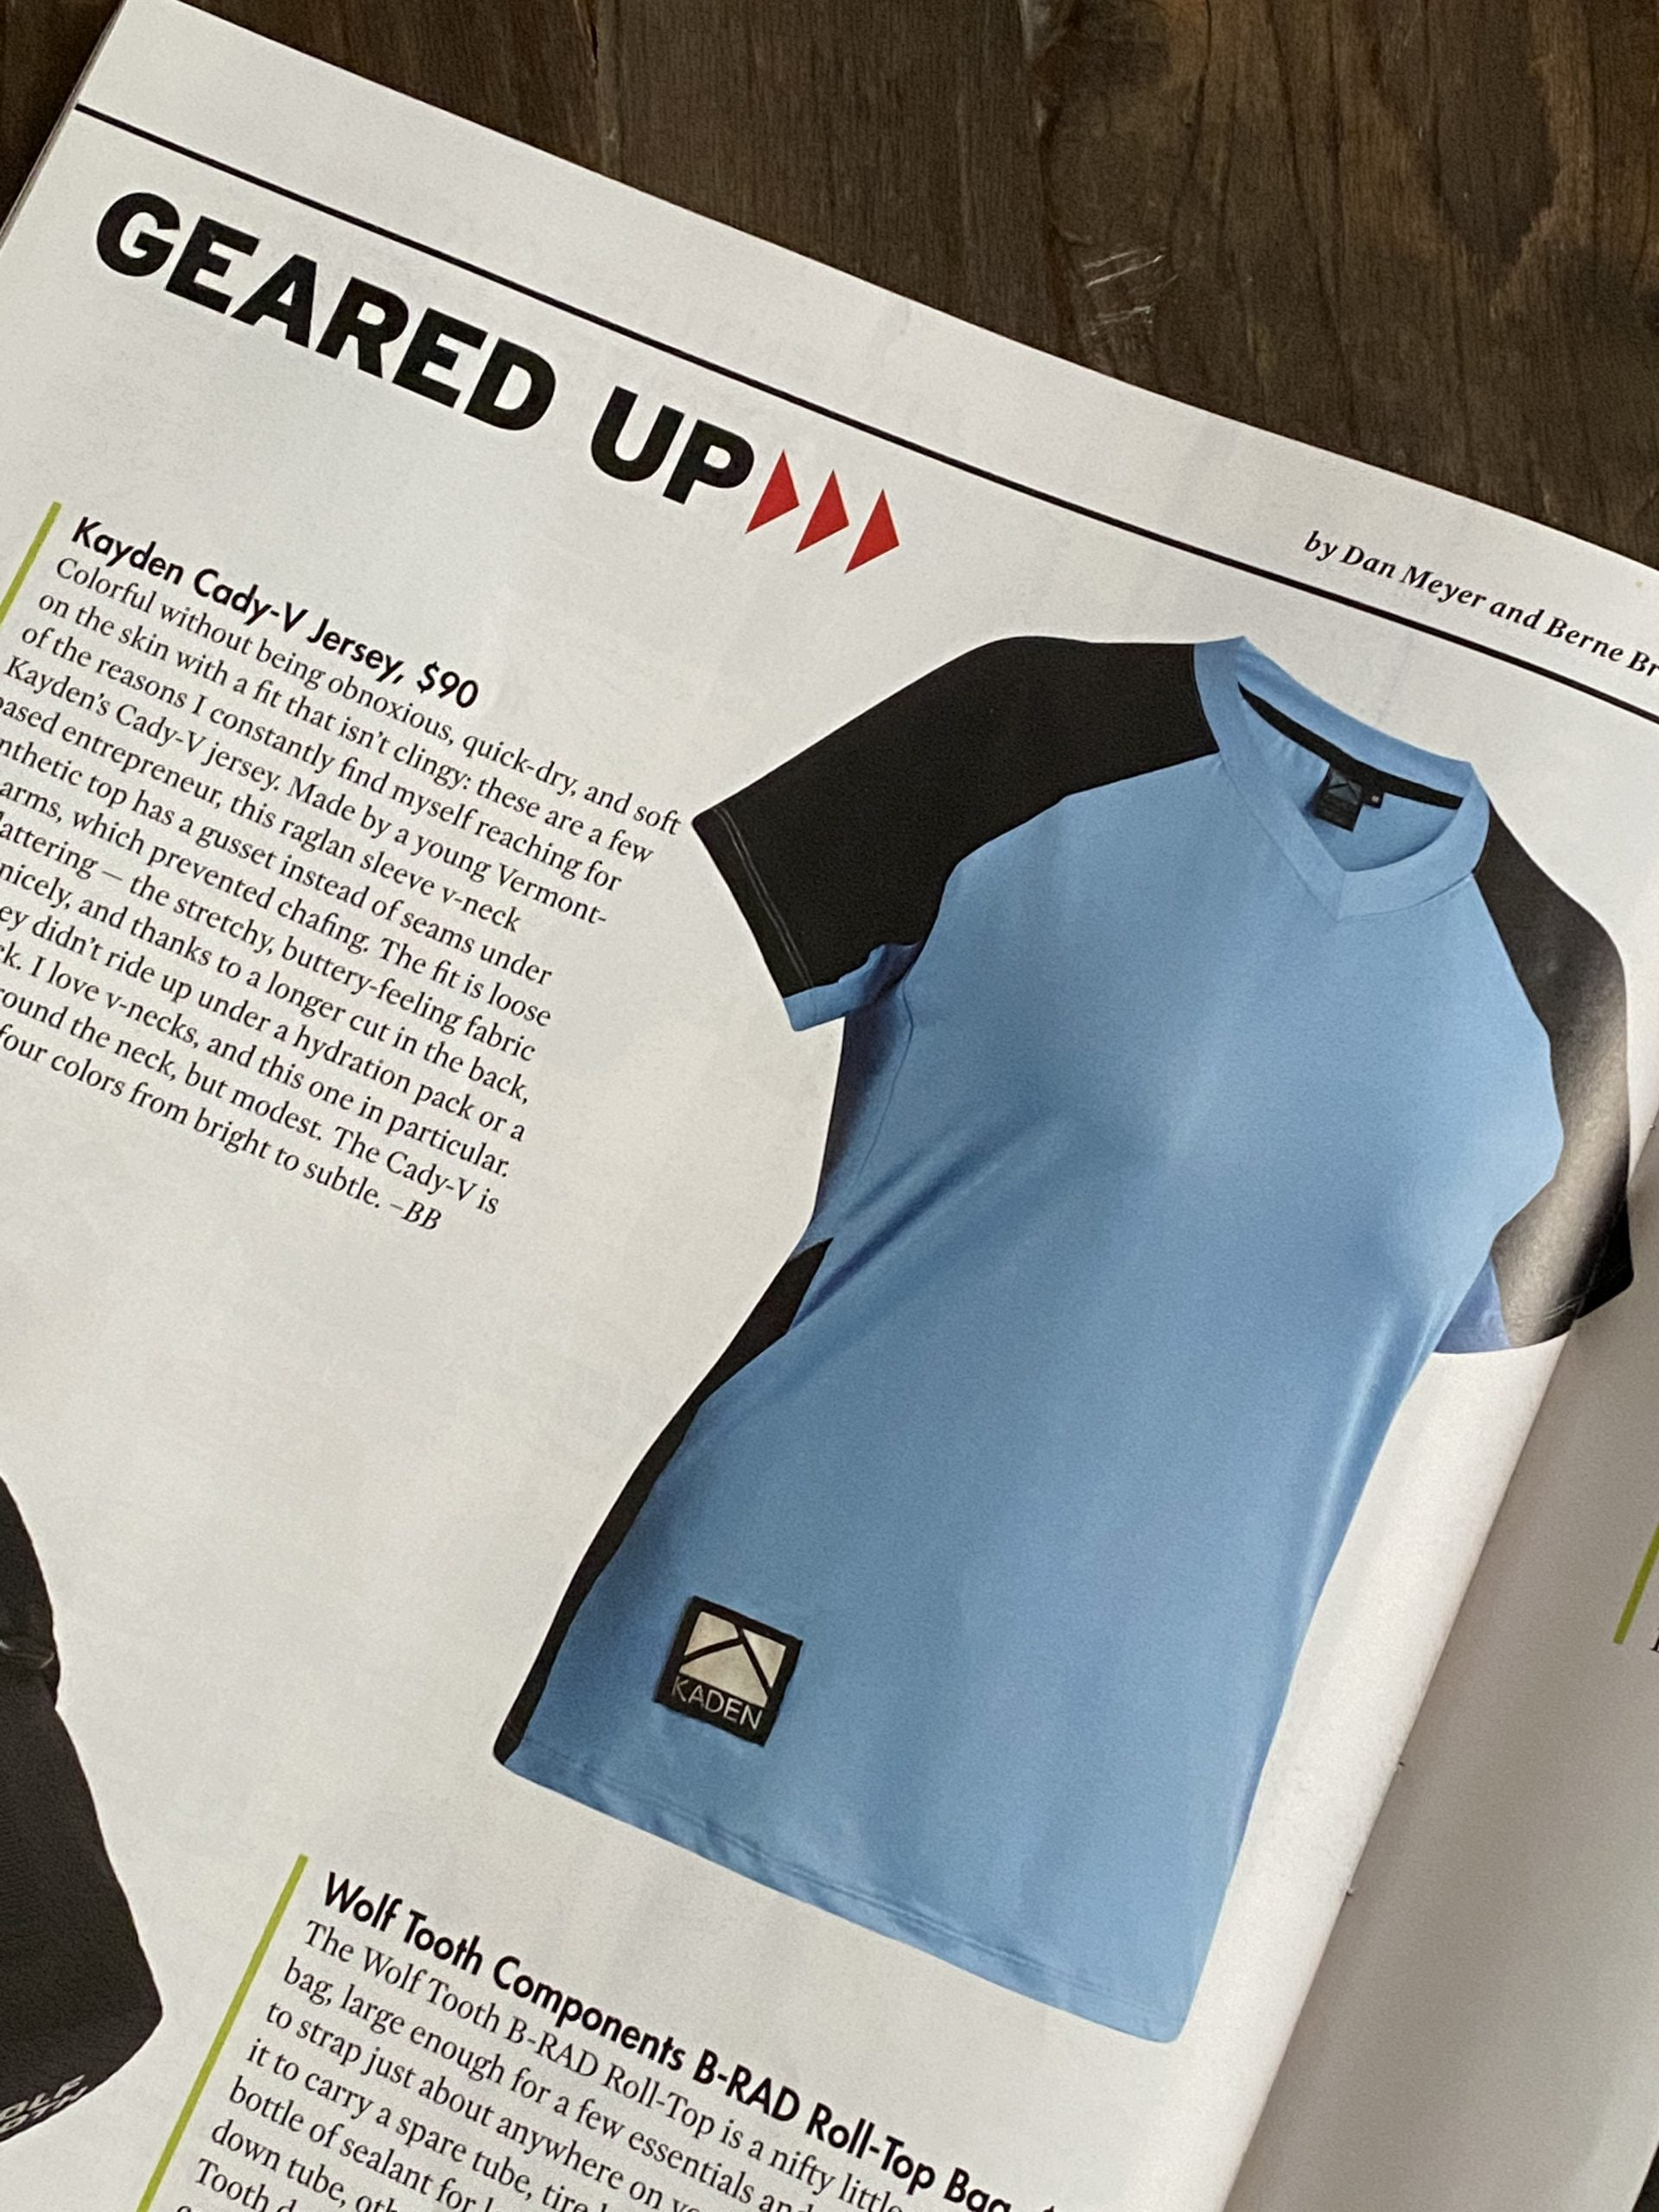 Cady-V Jersey Review in Adventure Cyclist Magazine - Publication Photo